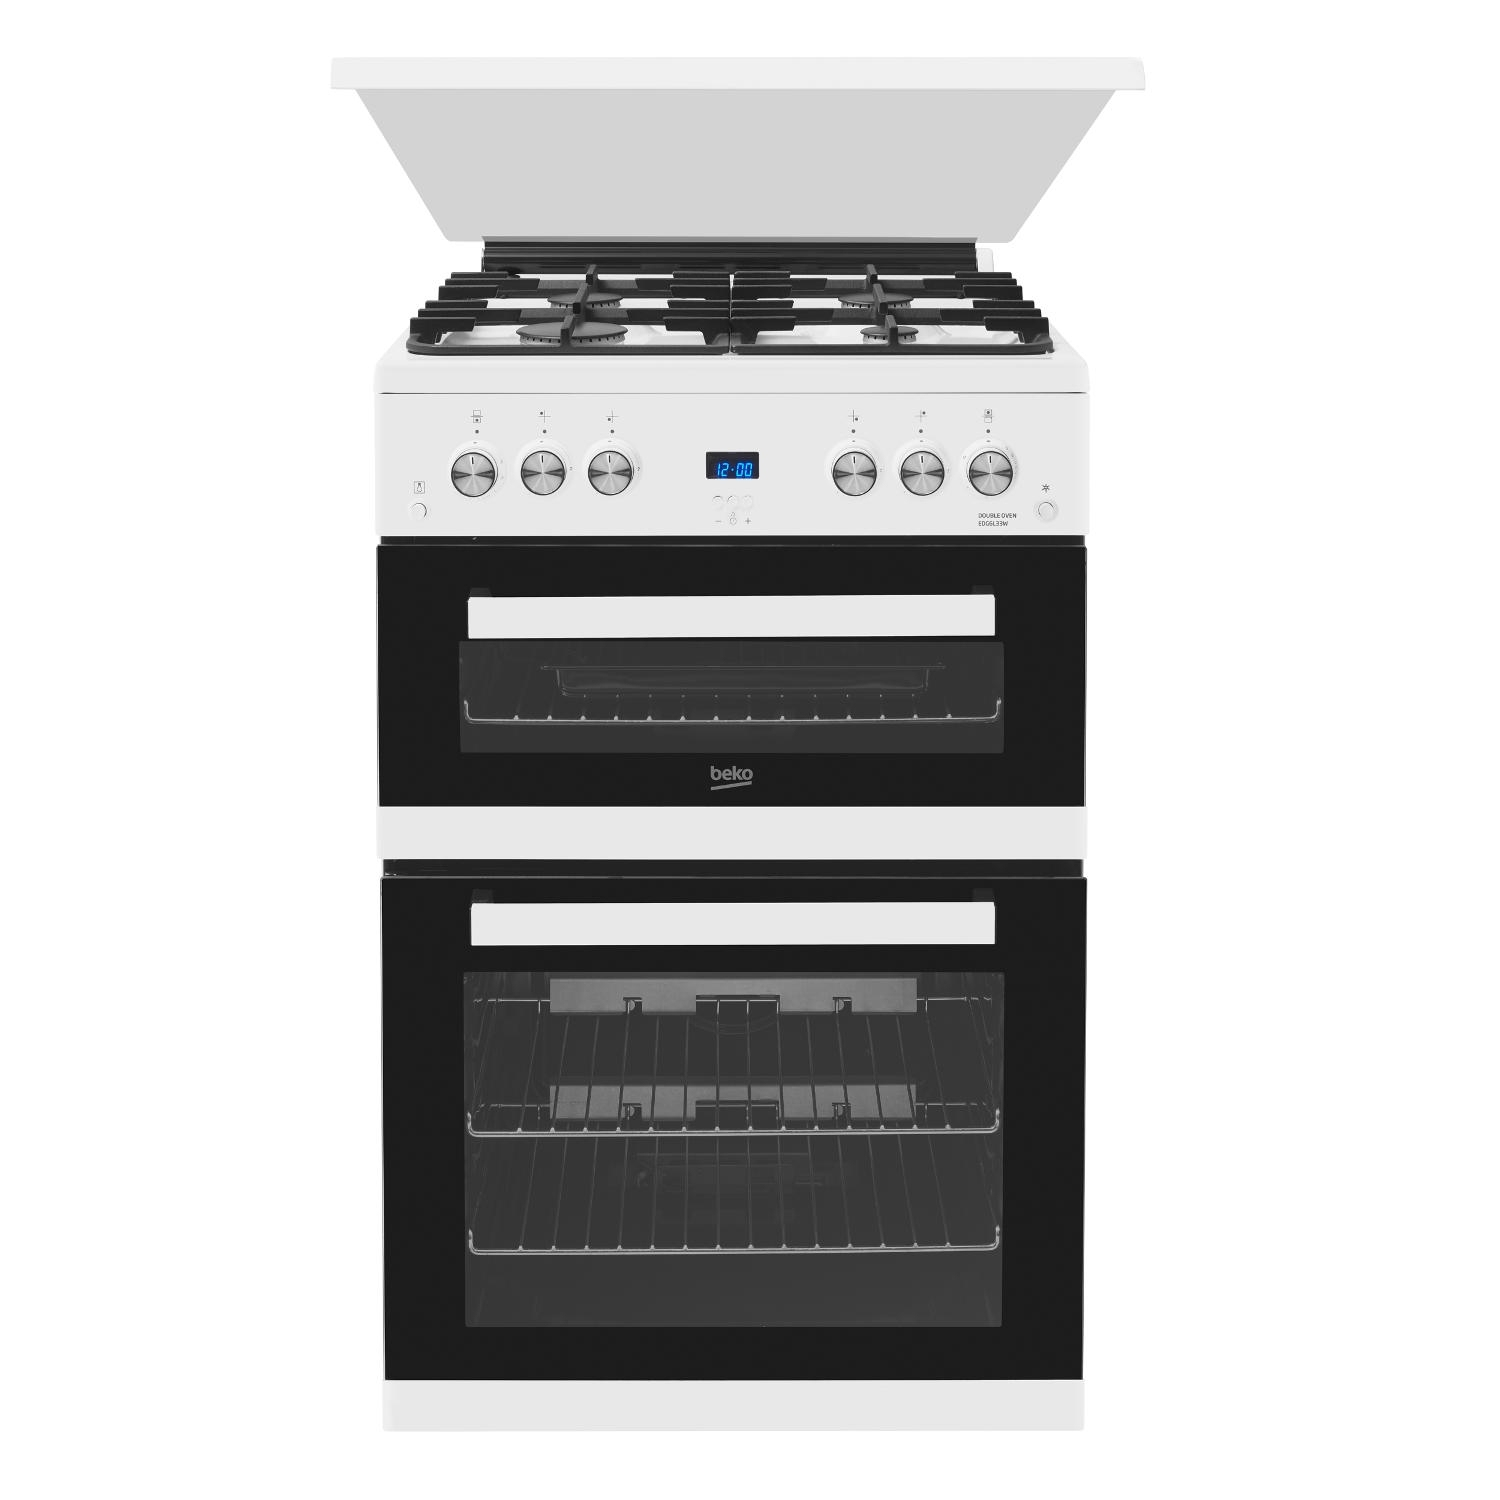 Beko 60cm Double Oven Gas Cooker with Glass Lid - White - 0